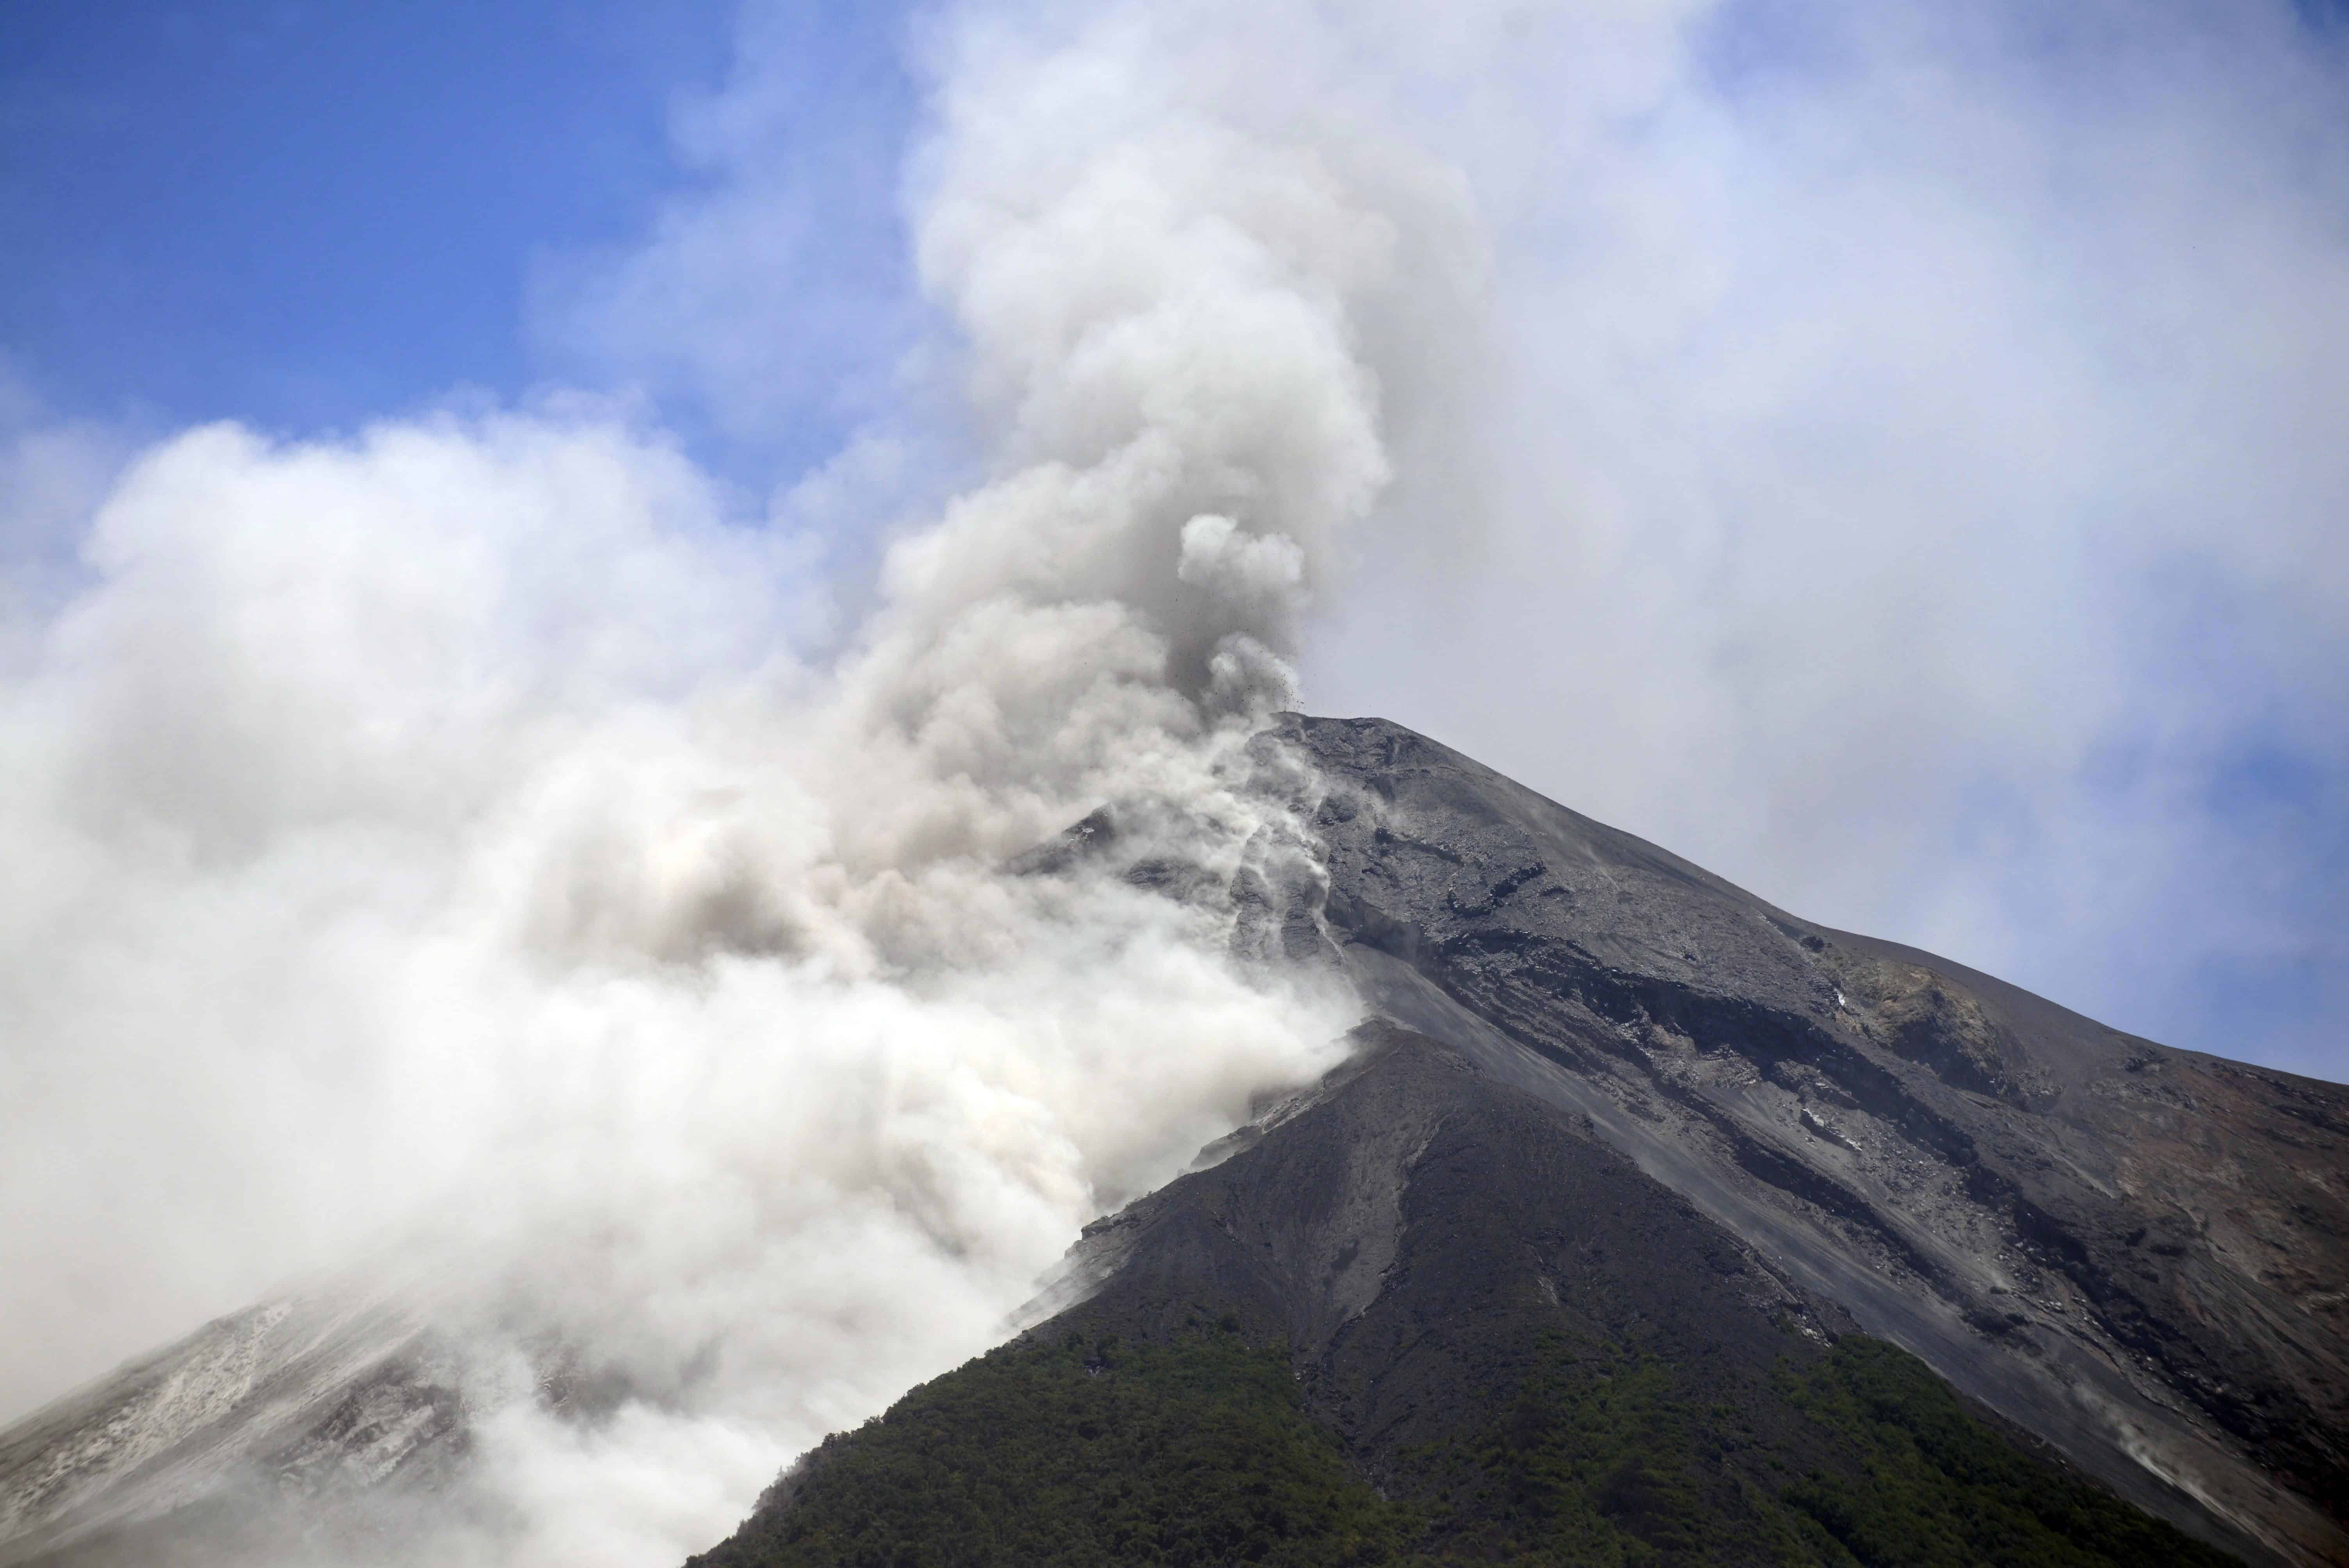 The Fuego Volcano, seen from Alotenango municipality, Sacatepequez departament, about 65 km southwest of Guatemala City, erupts on July 1, 2015. The volcano spewed lava and columns of ash into the air and authorities have raised the alert level in the area to orange.